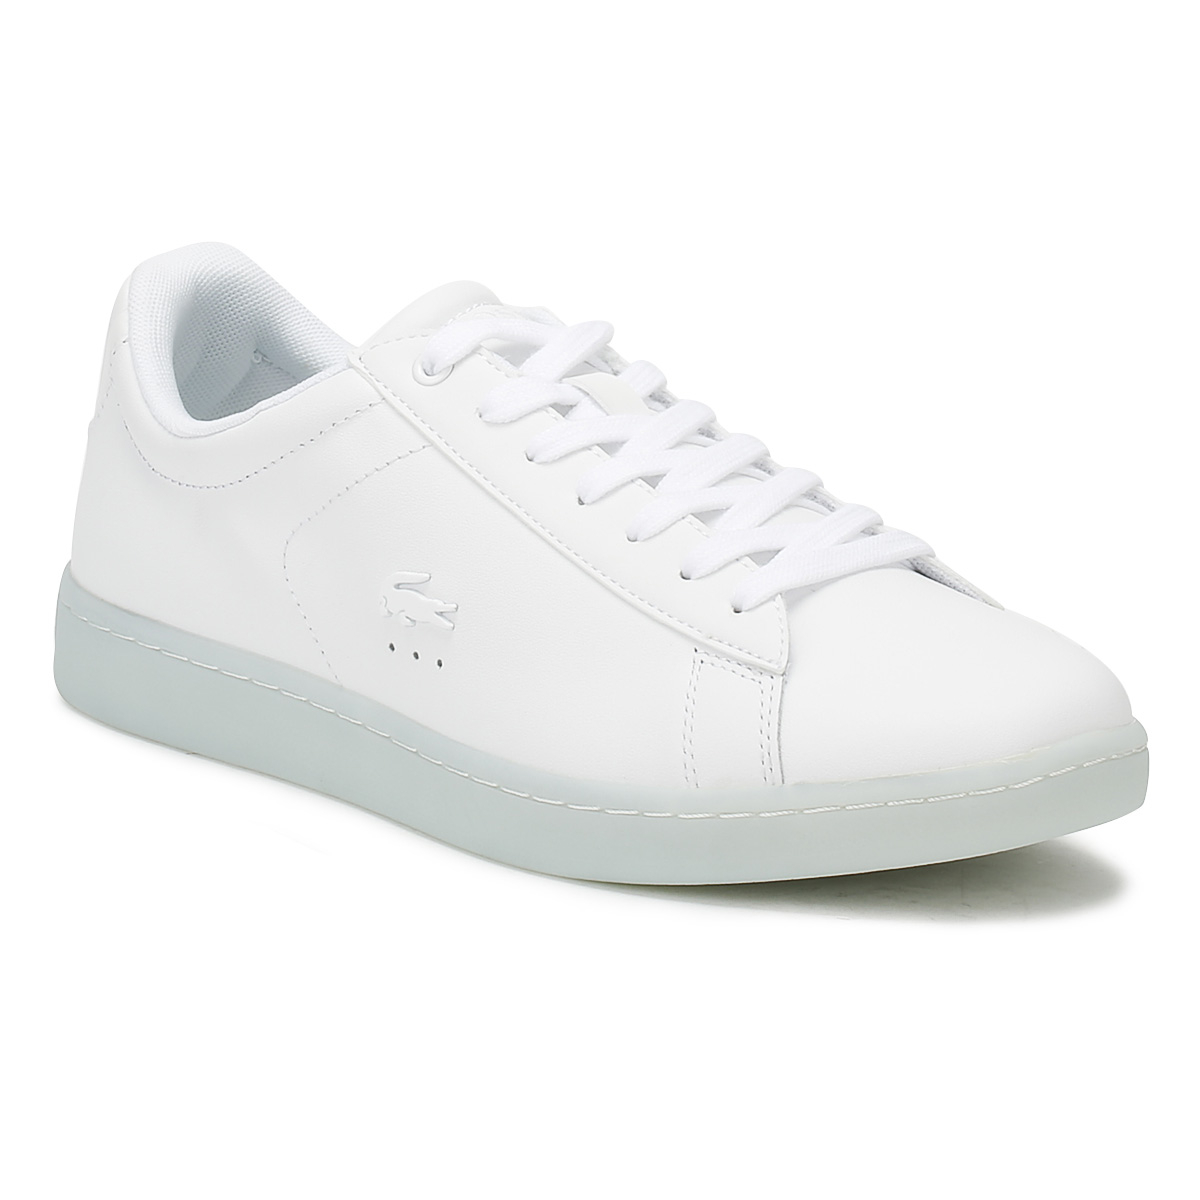 59570b57b Lacoste Womens Trainers White   Light Blue Carnaby EVO 118 3 Casual Shoes